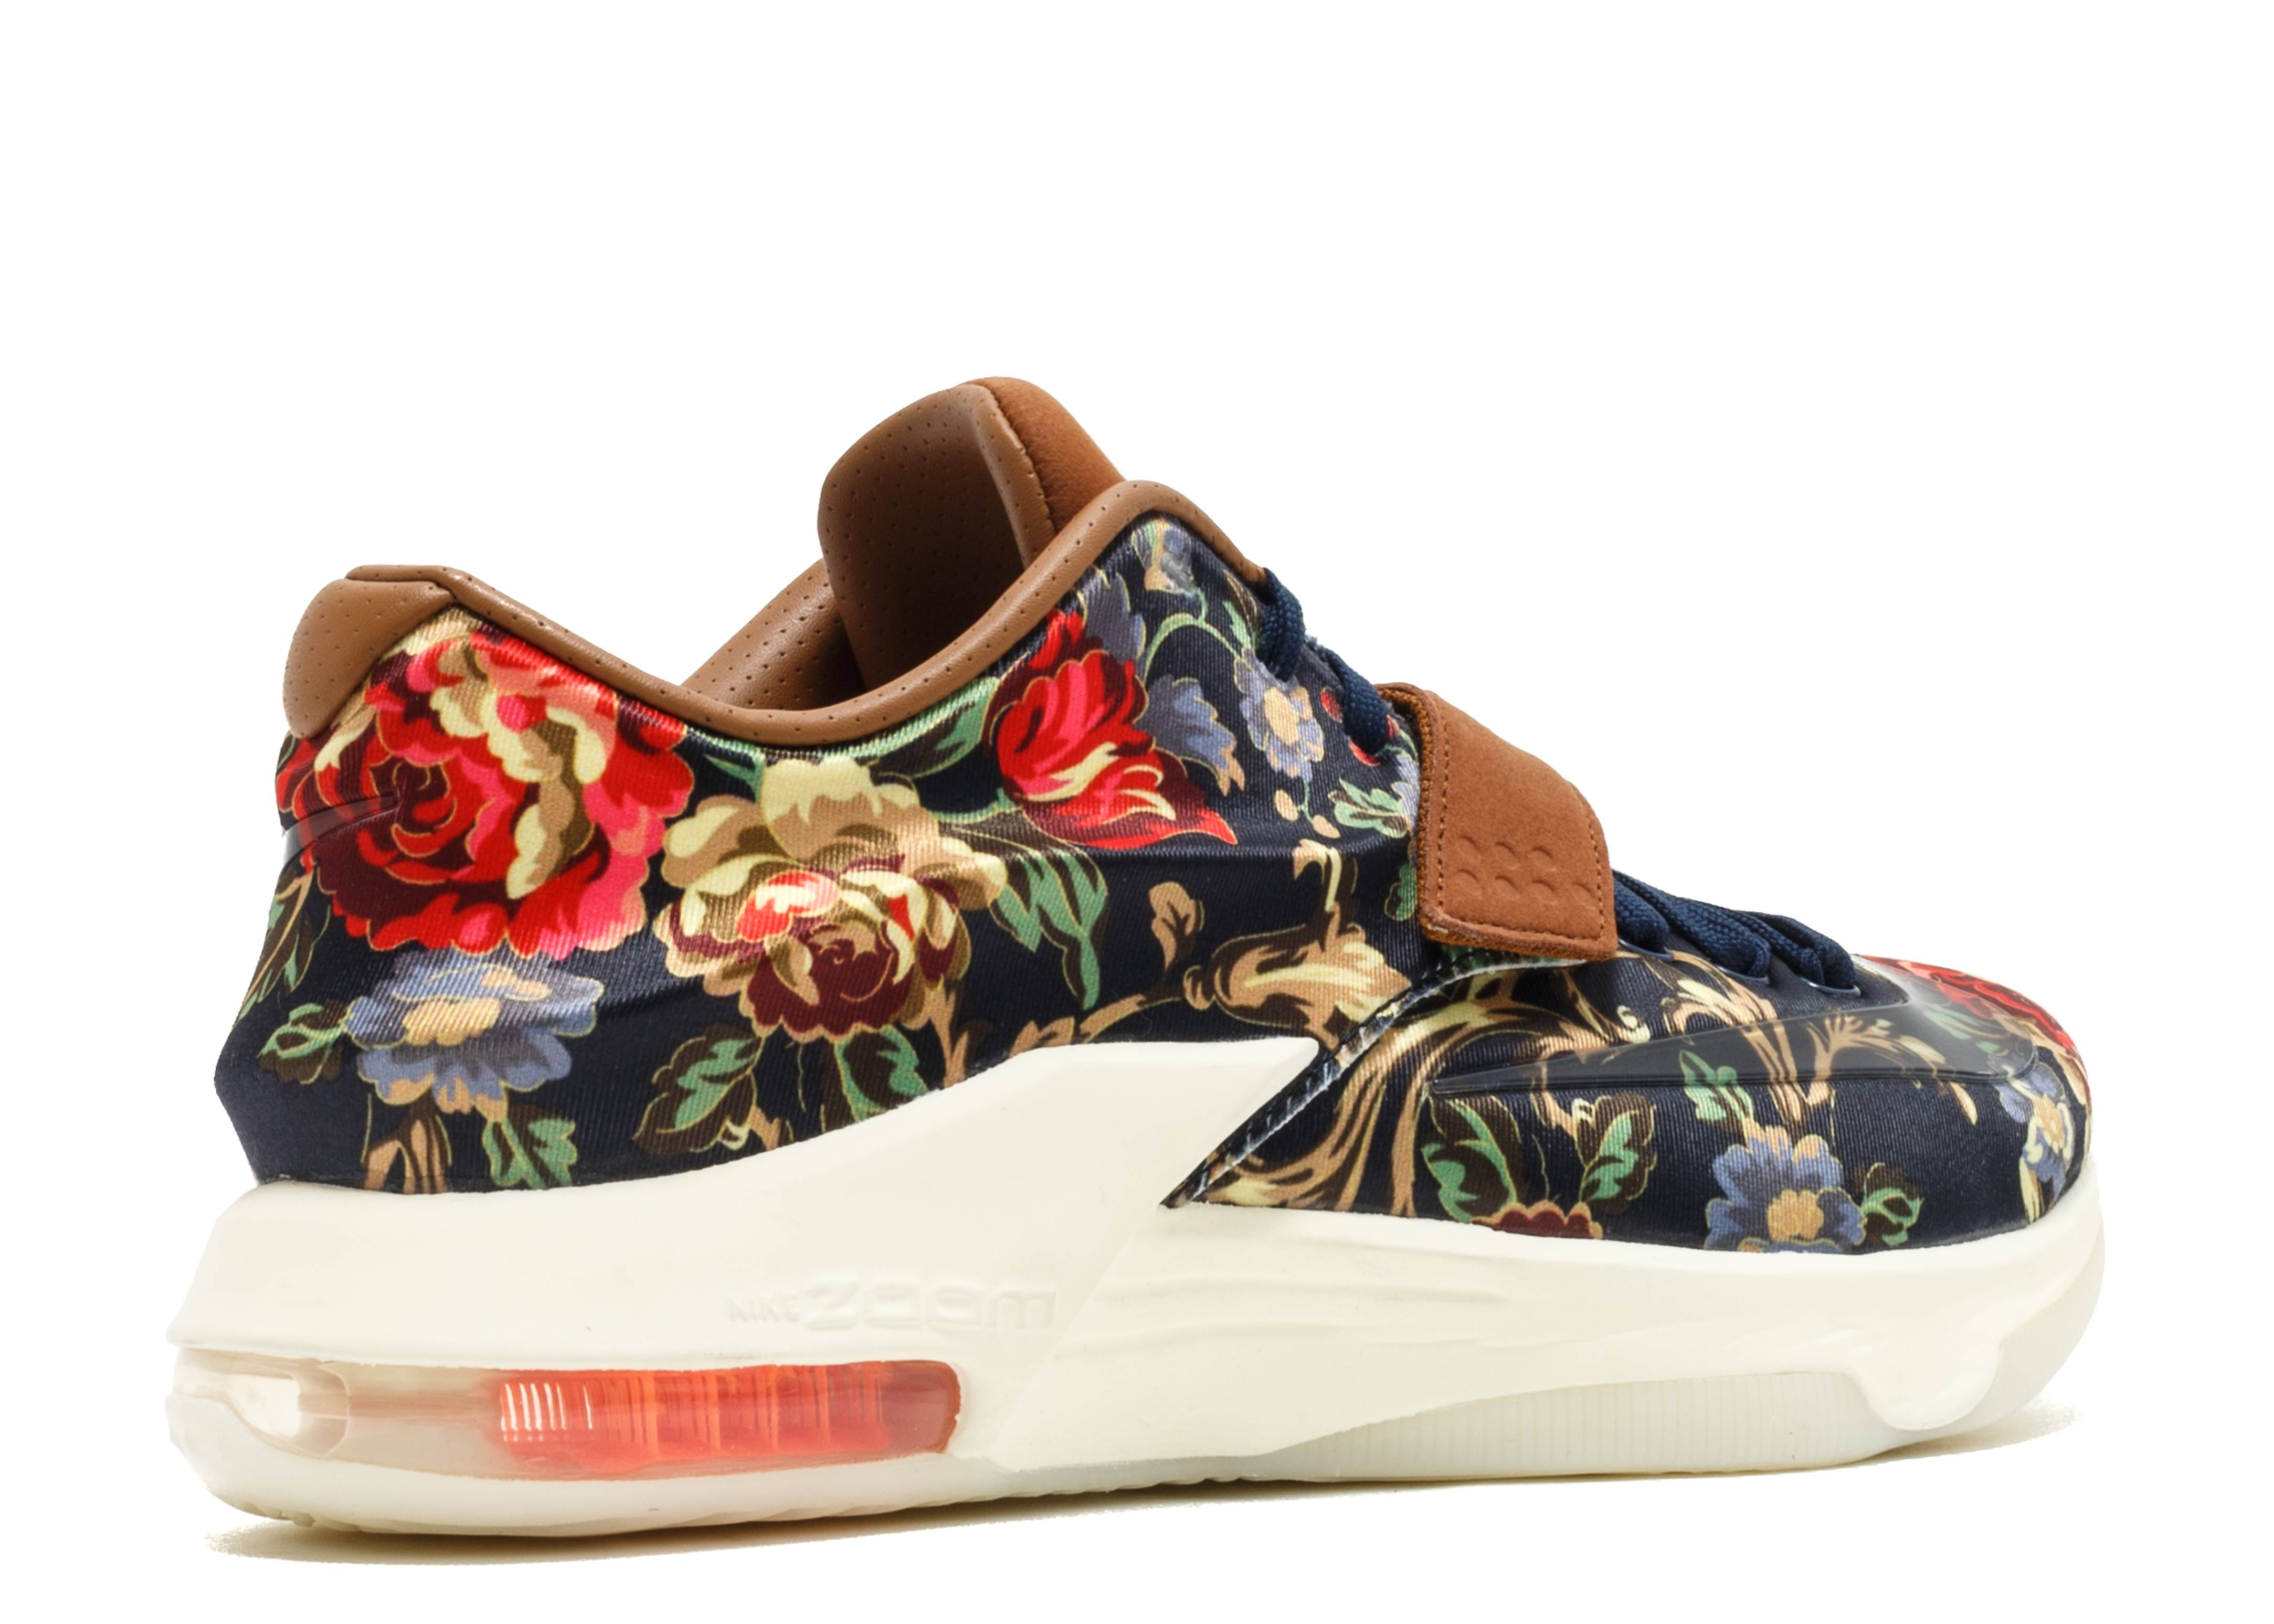 competitive price b3a2f ae995 ... kd 7 ext floral qs